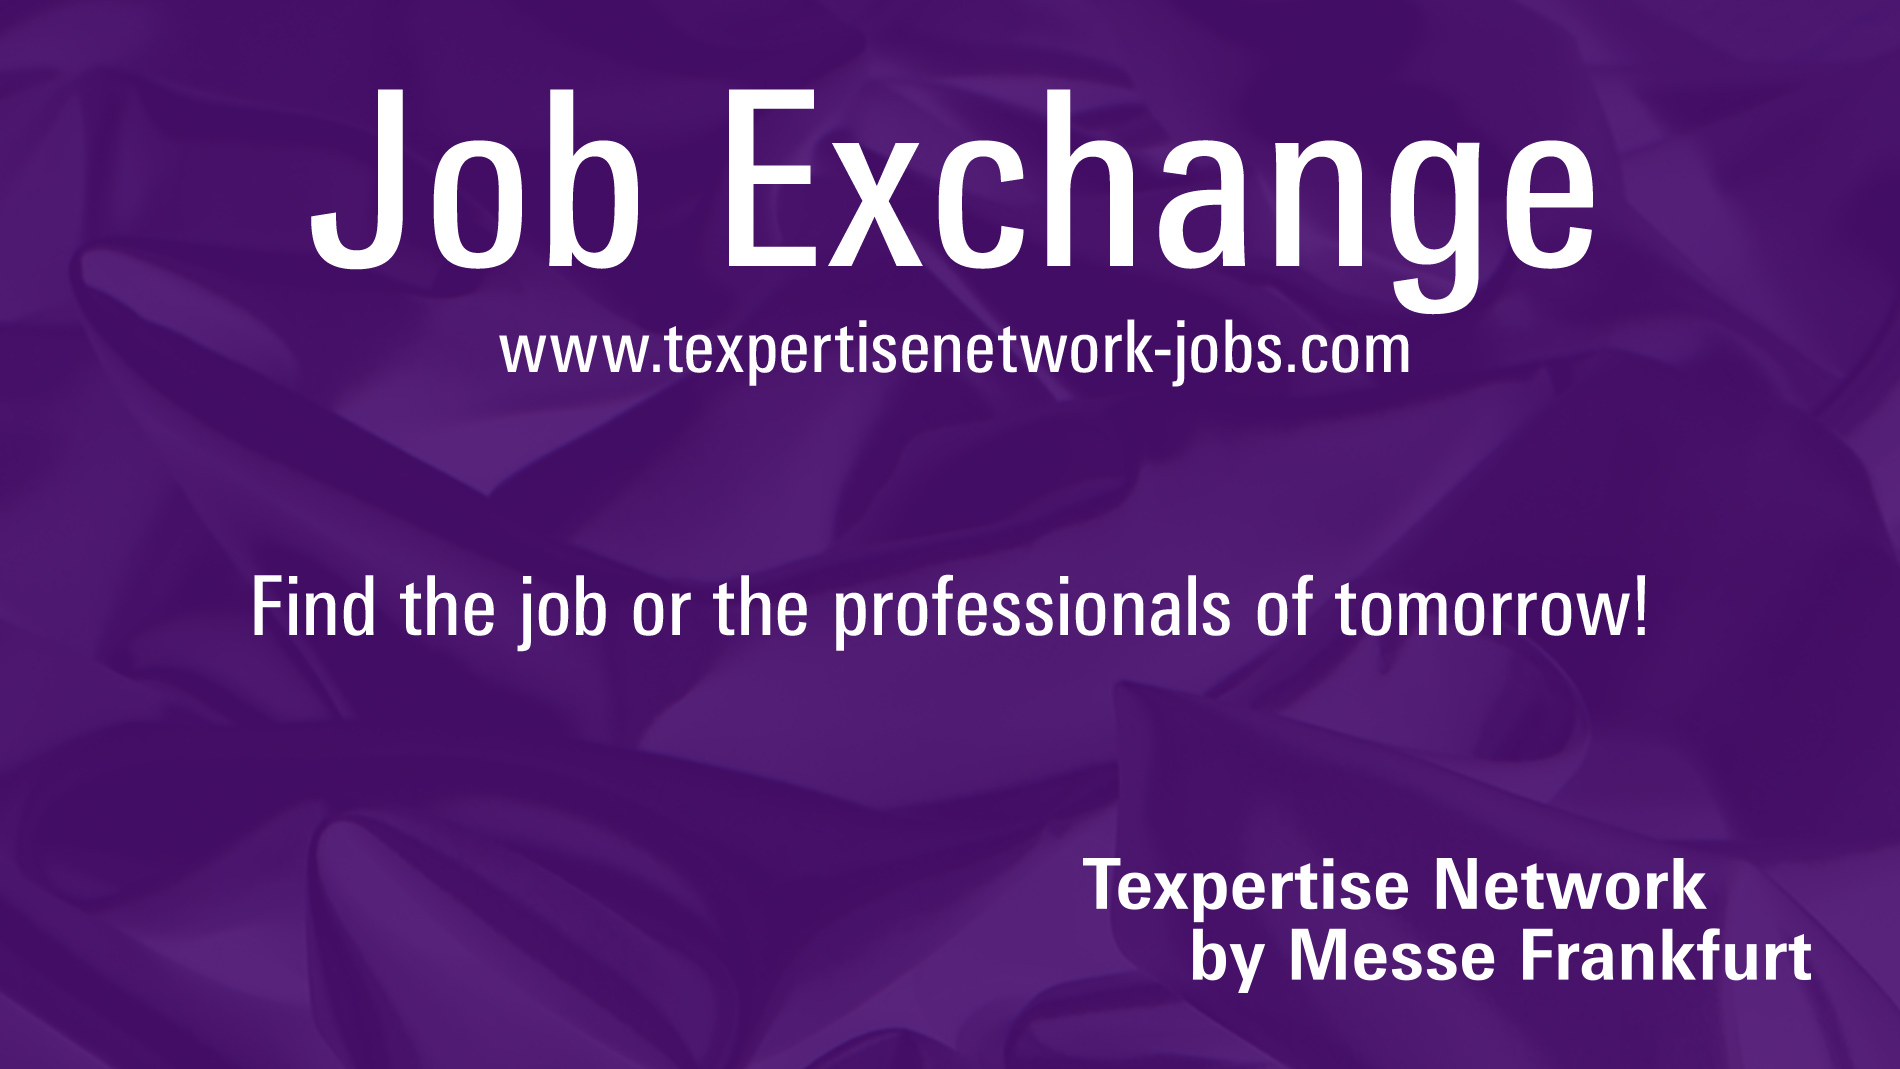 Keyvisual Job Exchange Texpertise Network